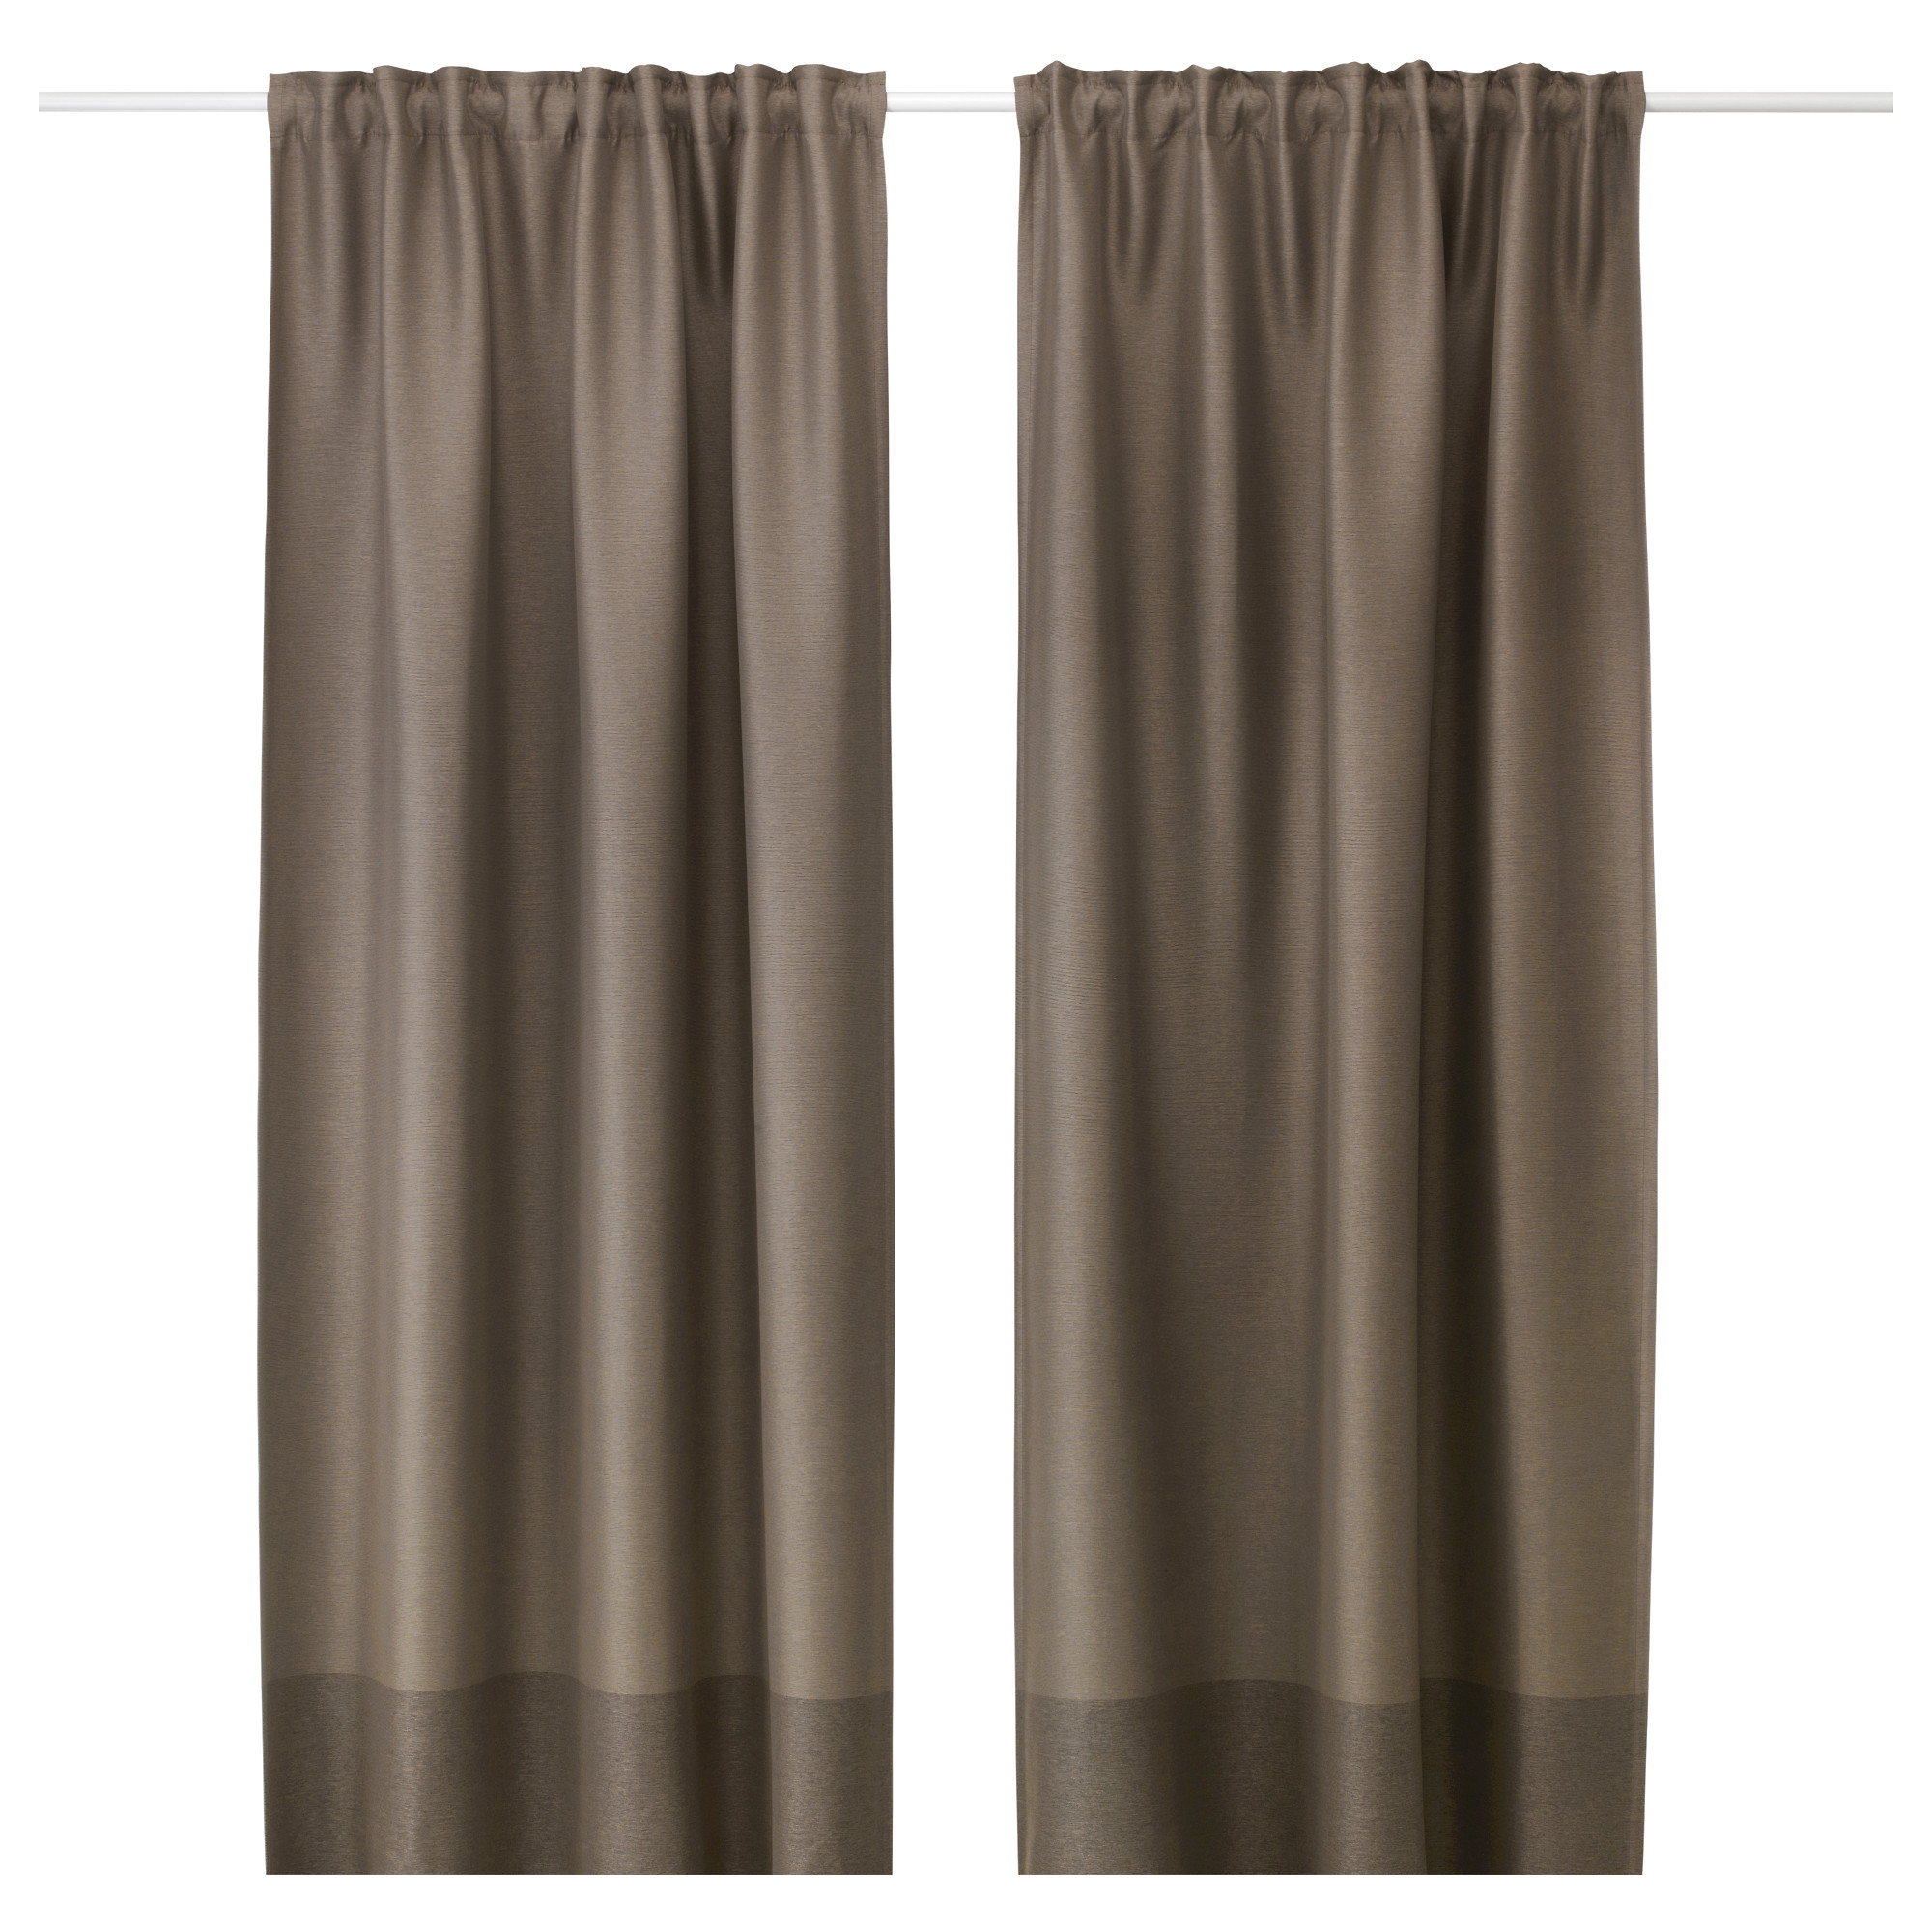 Opaque Curtains | Cheap Blackout Curtains | Blackout Curtains Clearance